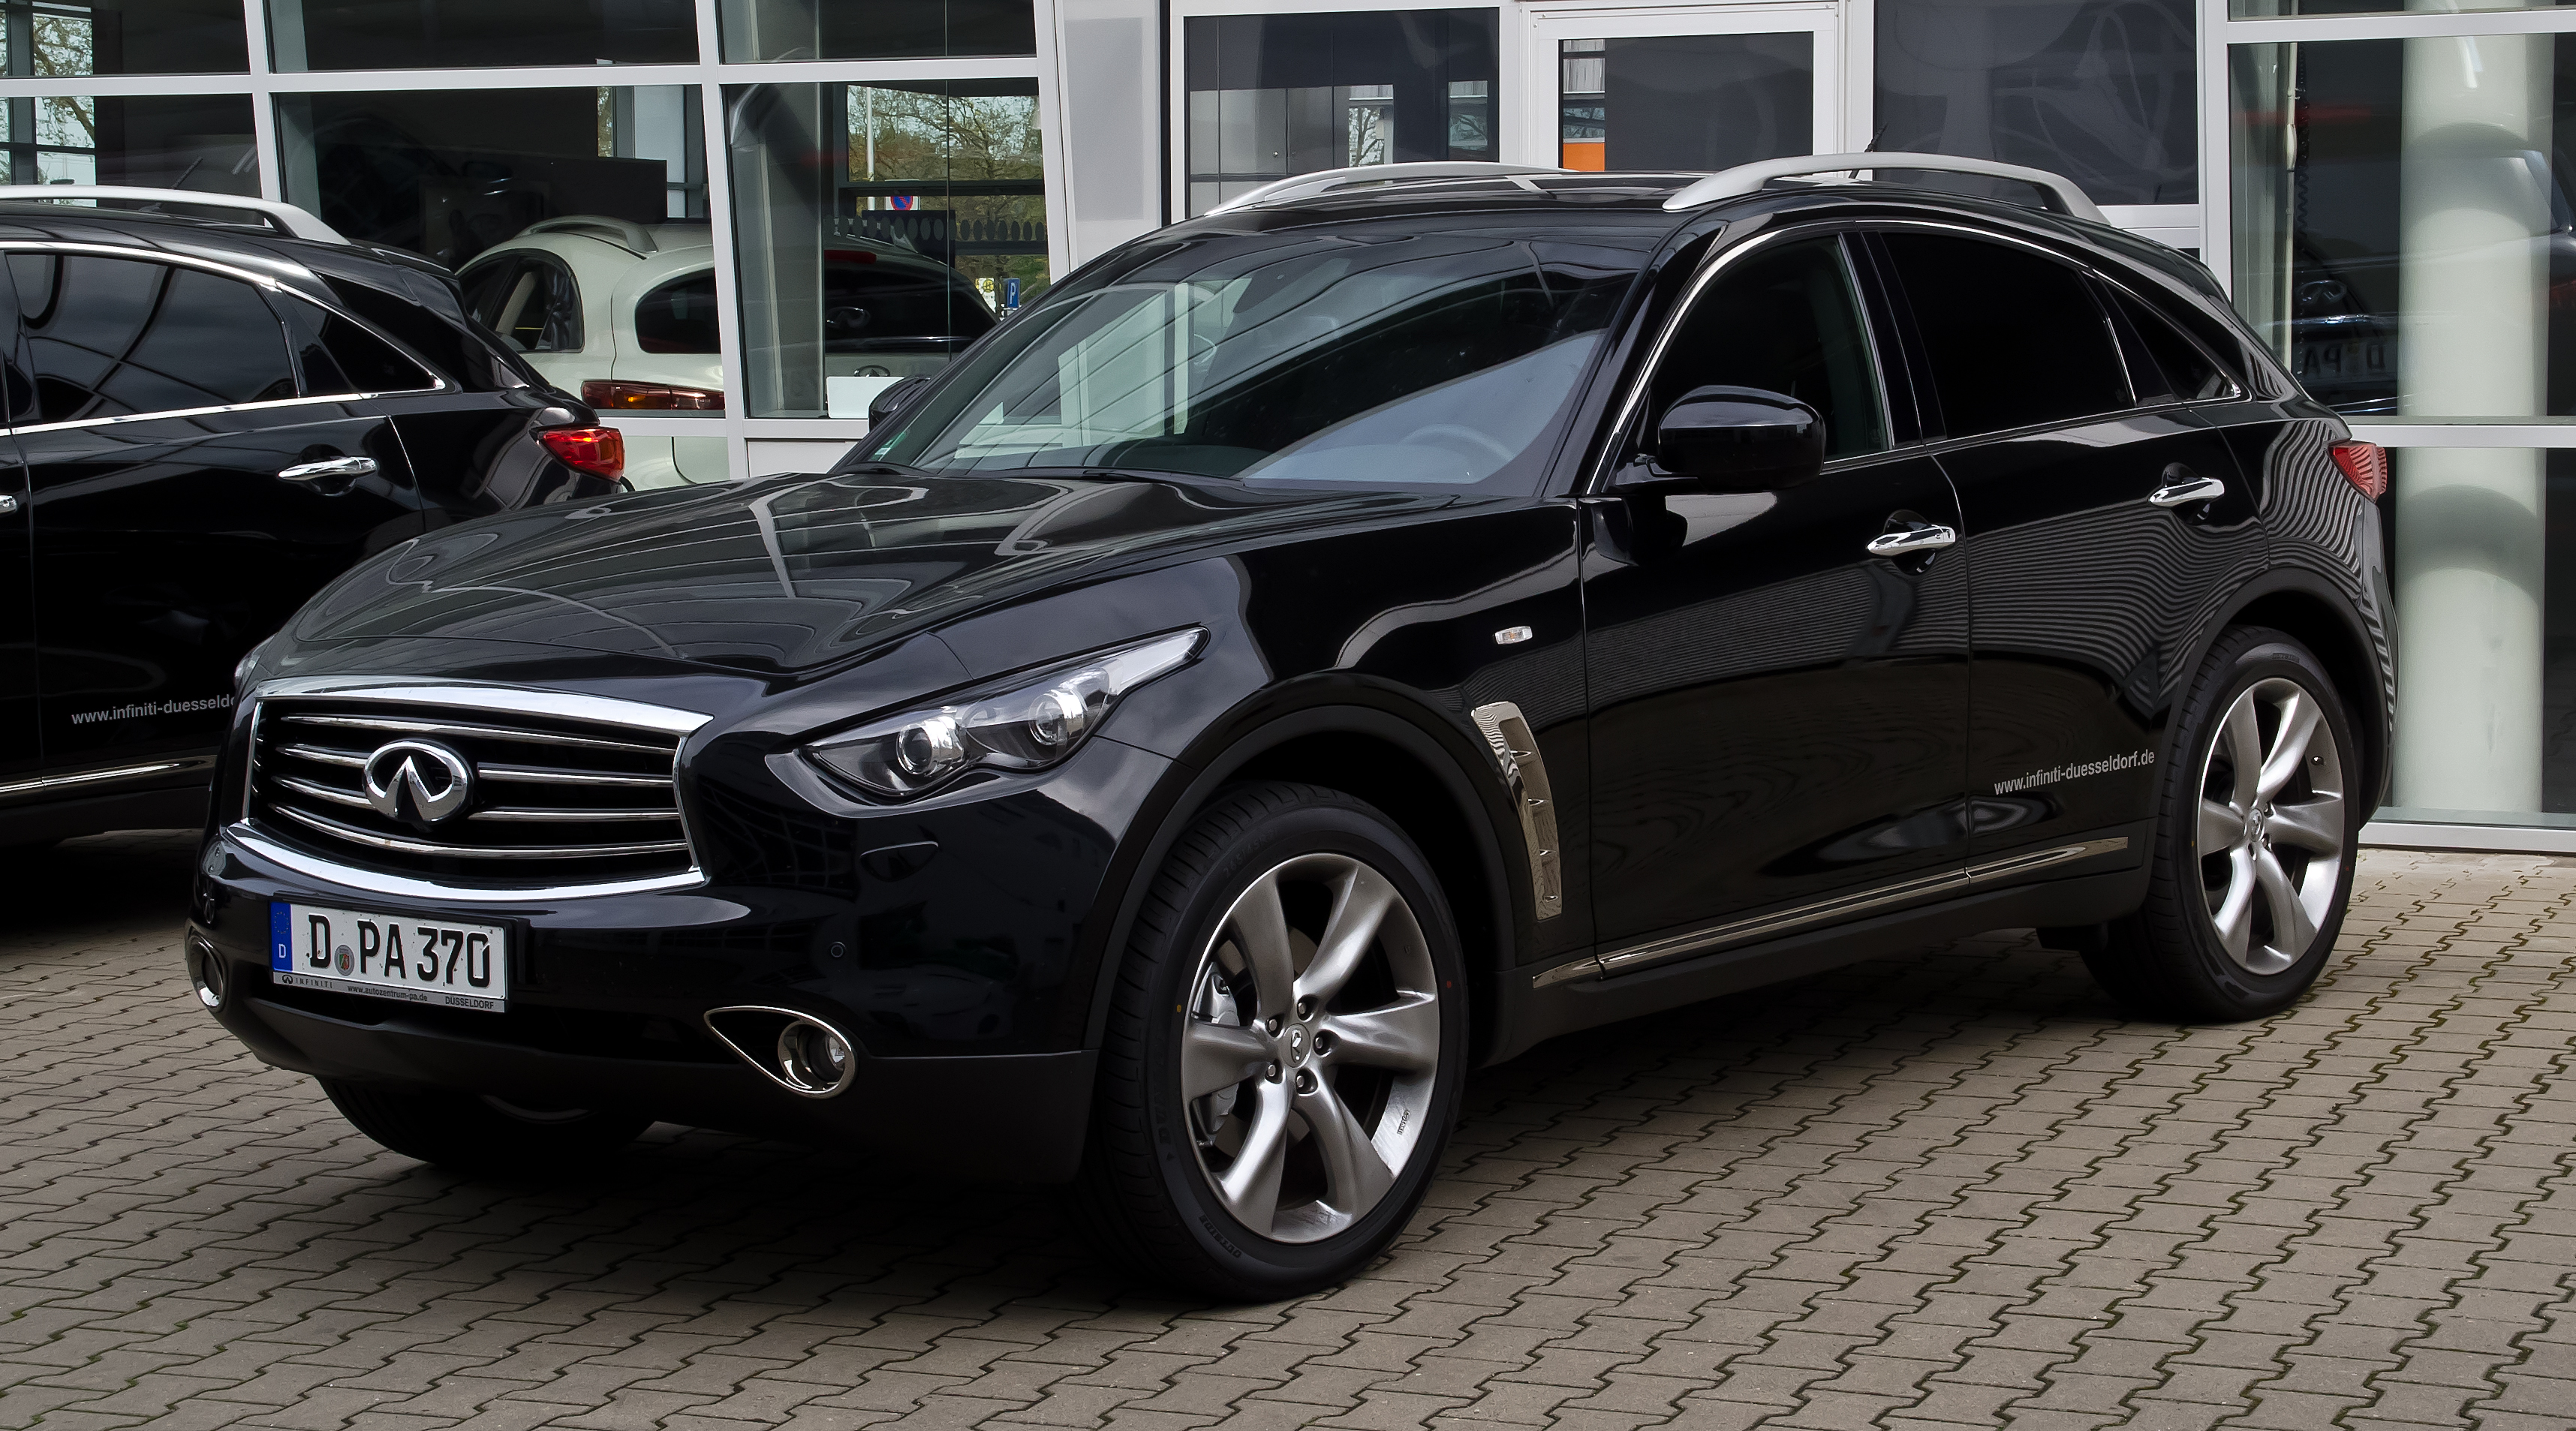 2014 infiniti fx37 image collections hd cars wallpaper 2009 infiniti fx37 image collections hd cars wallpaper infiniti fx wikiwand vanachro image collections vanachro image vanachro Gallery